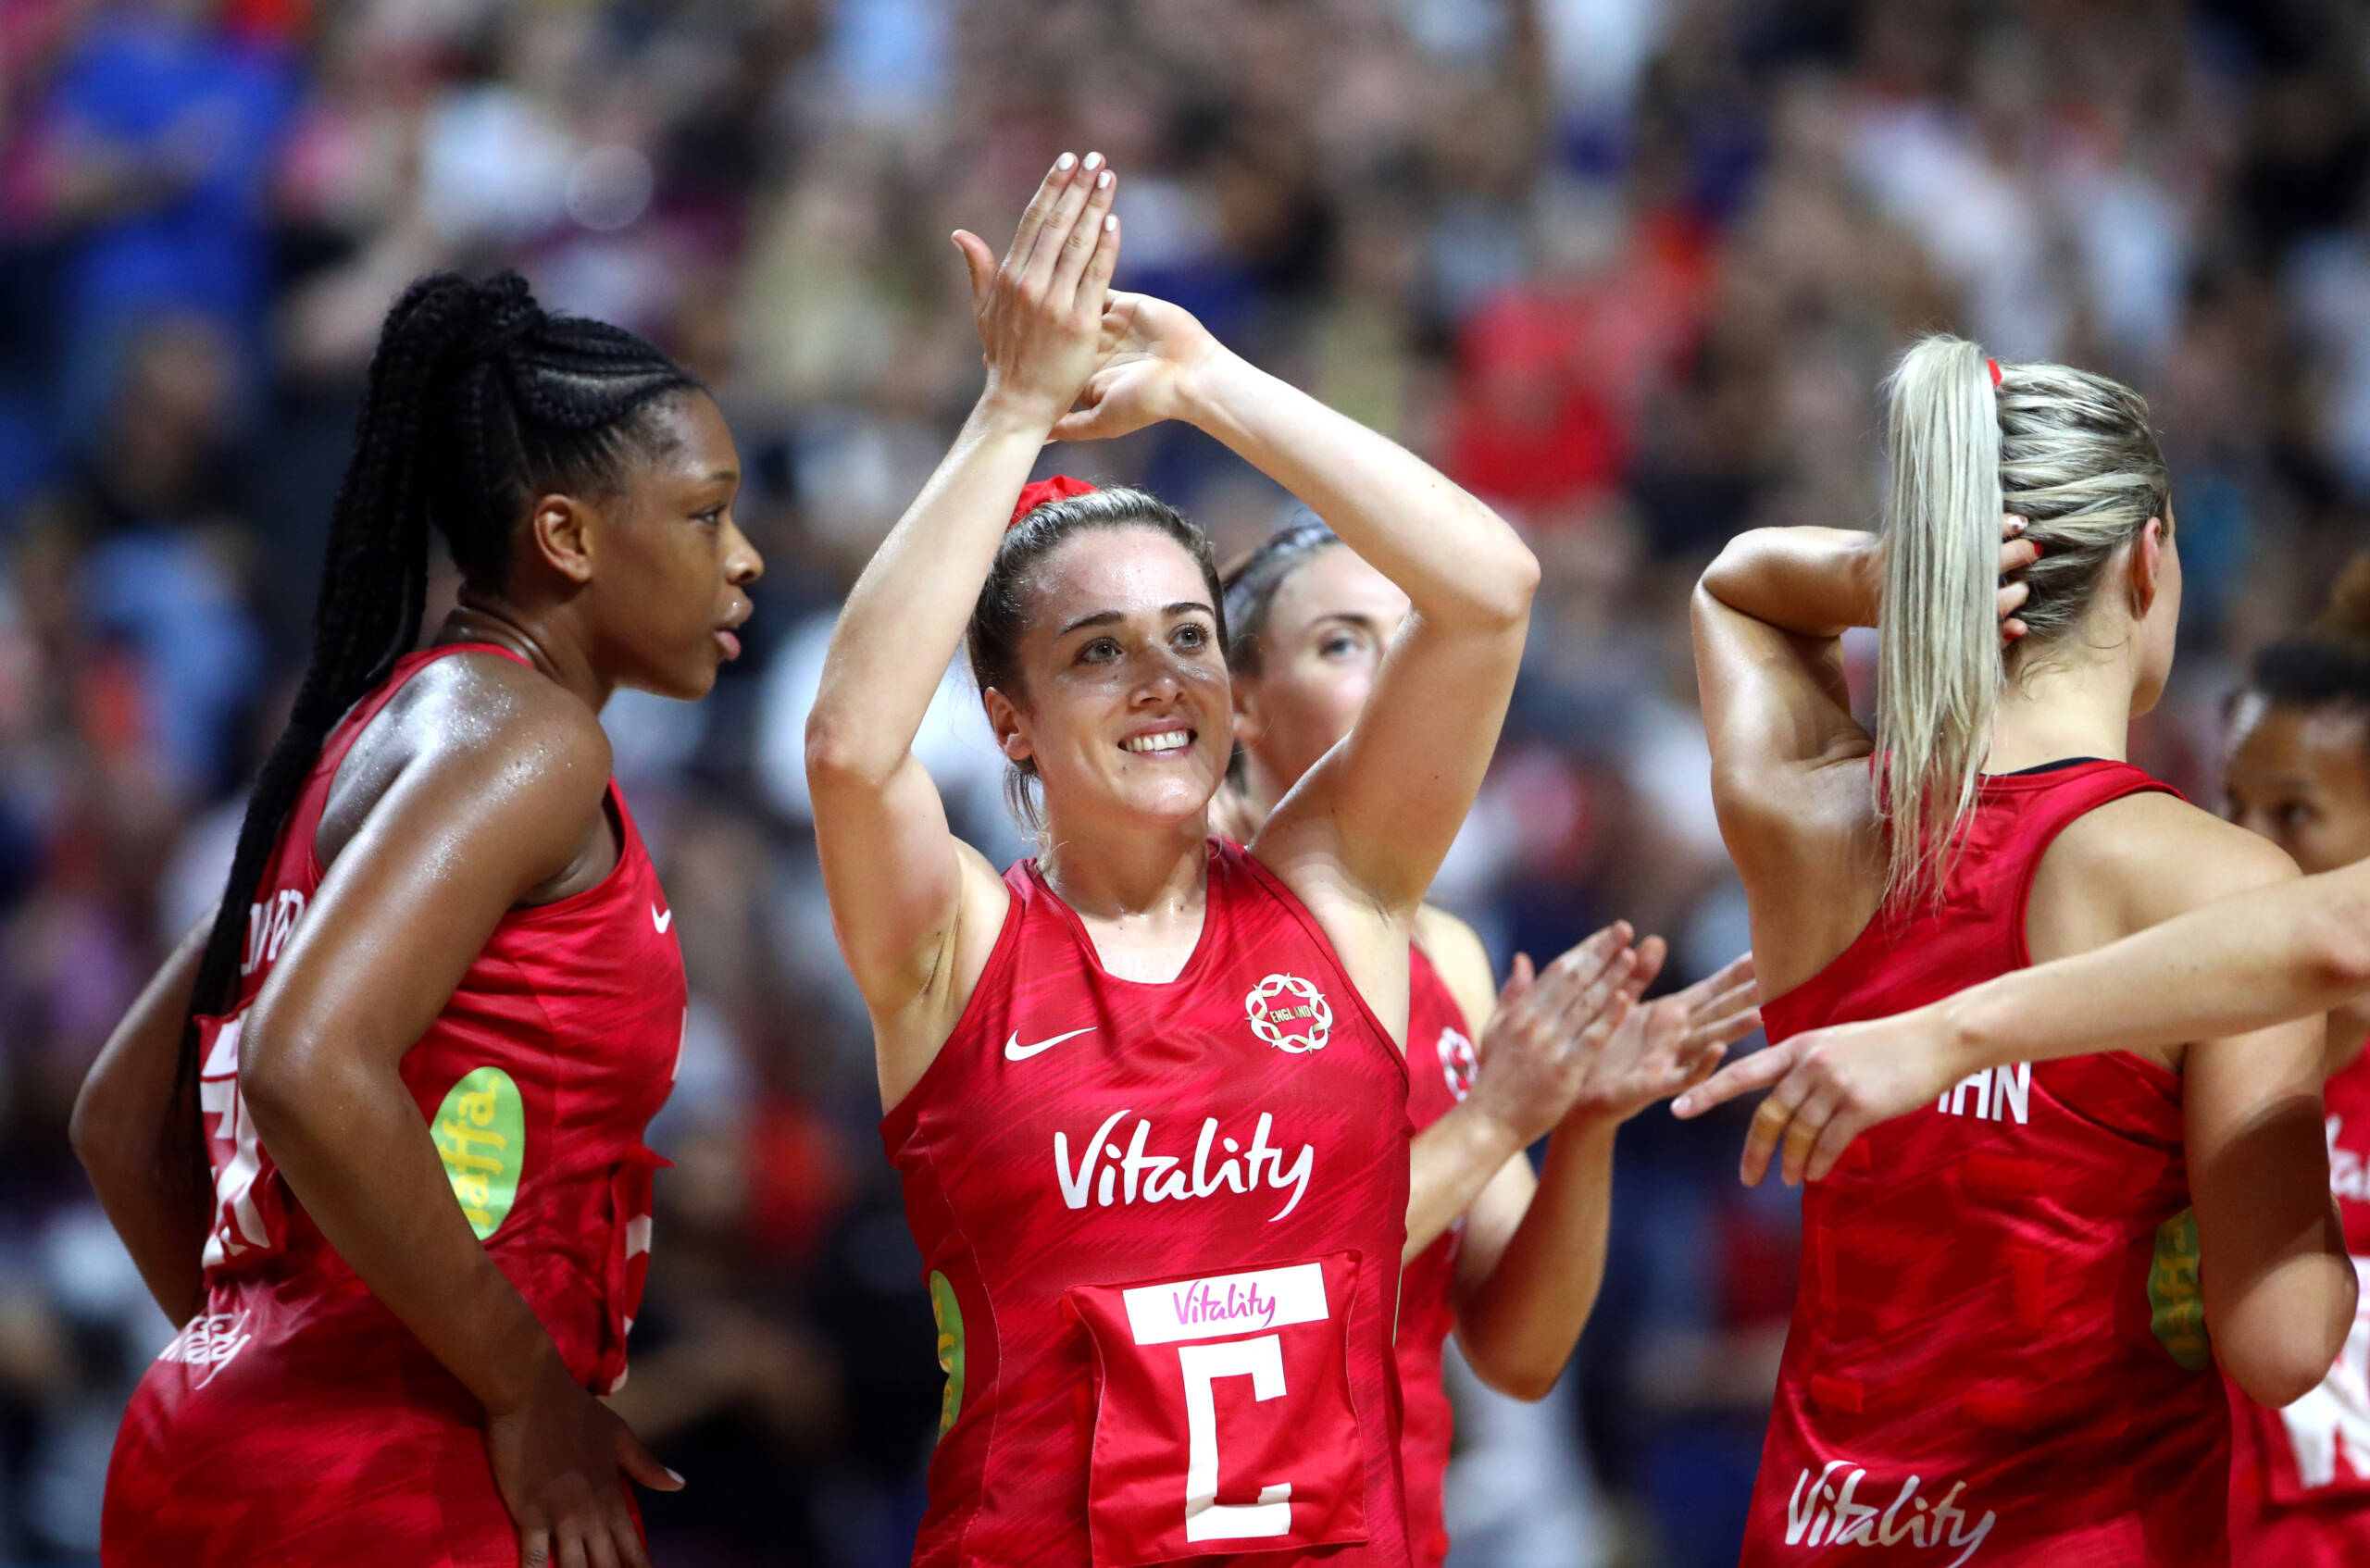 Nat Panagarry of the Vitality Roses and Loughborough Lightning.